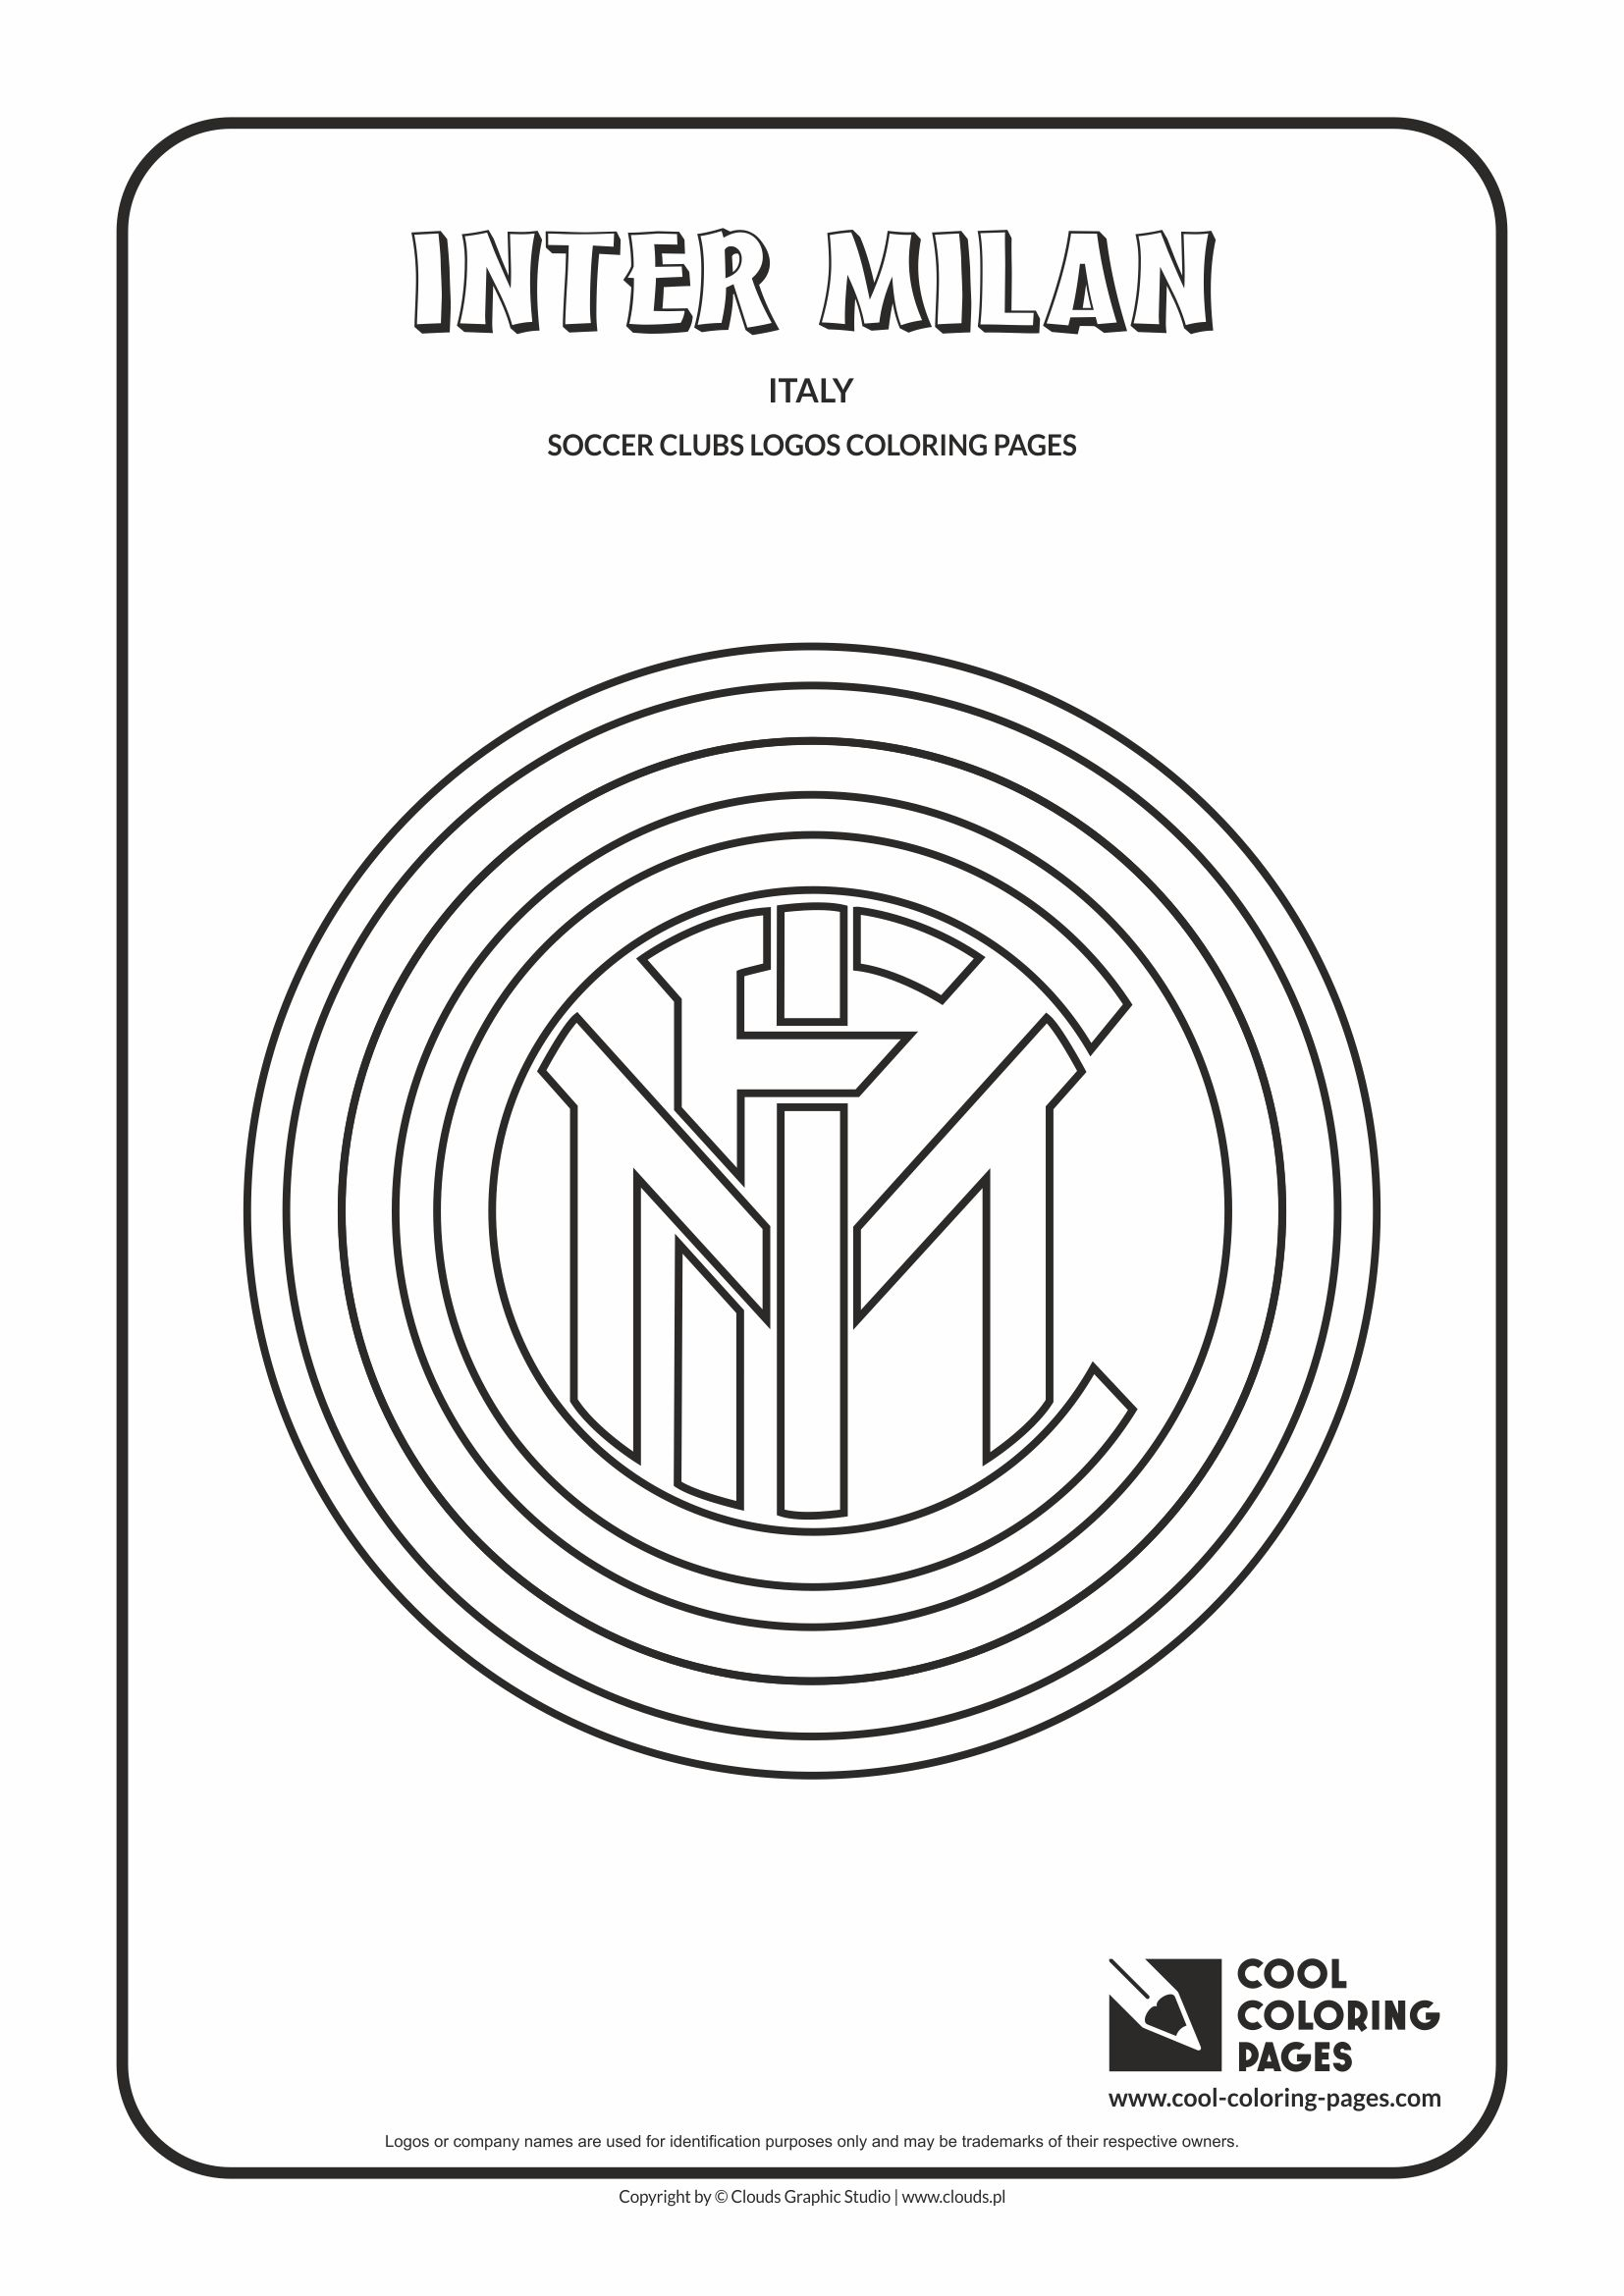 Cool Coloring Pages - Soccer Clubs Logos / Inter Milan logo / Coloring page with Inter Milan logo